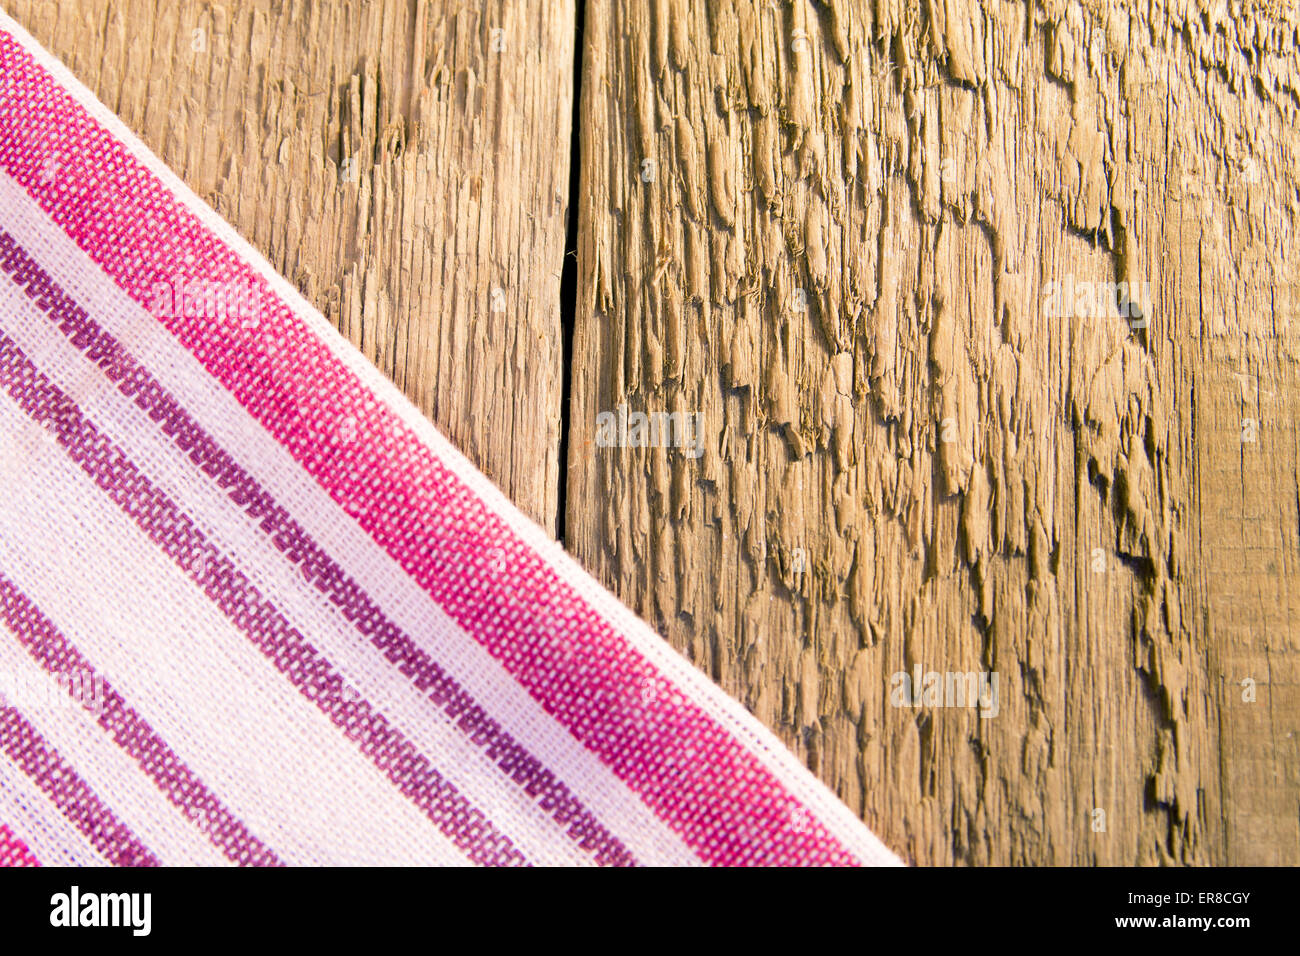 striped napkin on rustic wooden backround (table, texture) - Stock Image